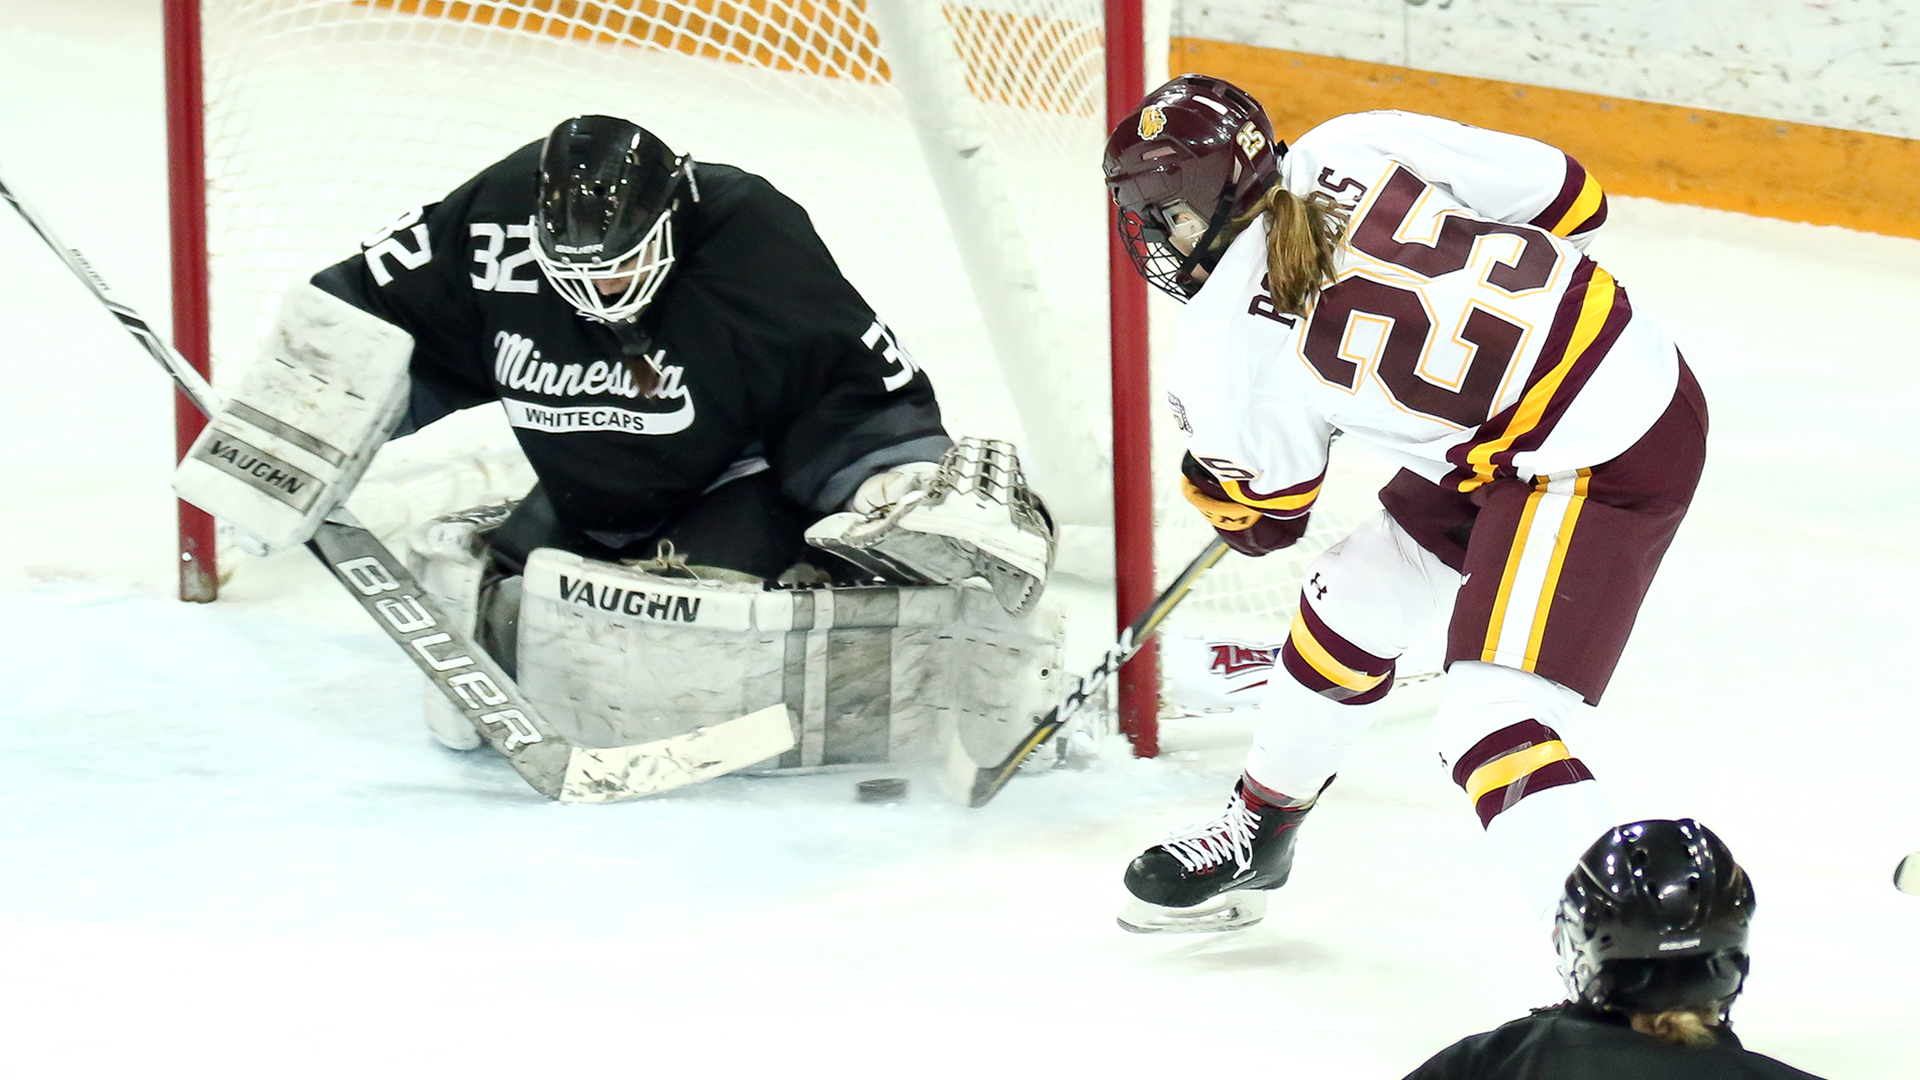 UMD Forward Rodgers Transfers to RMU for 2019-20 Season